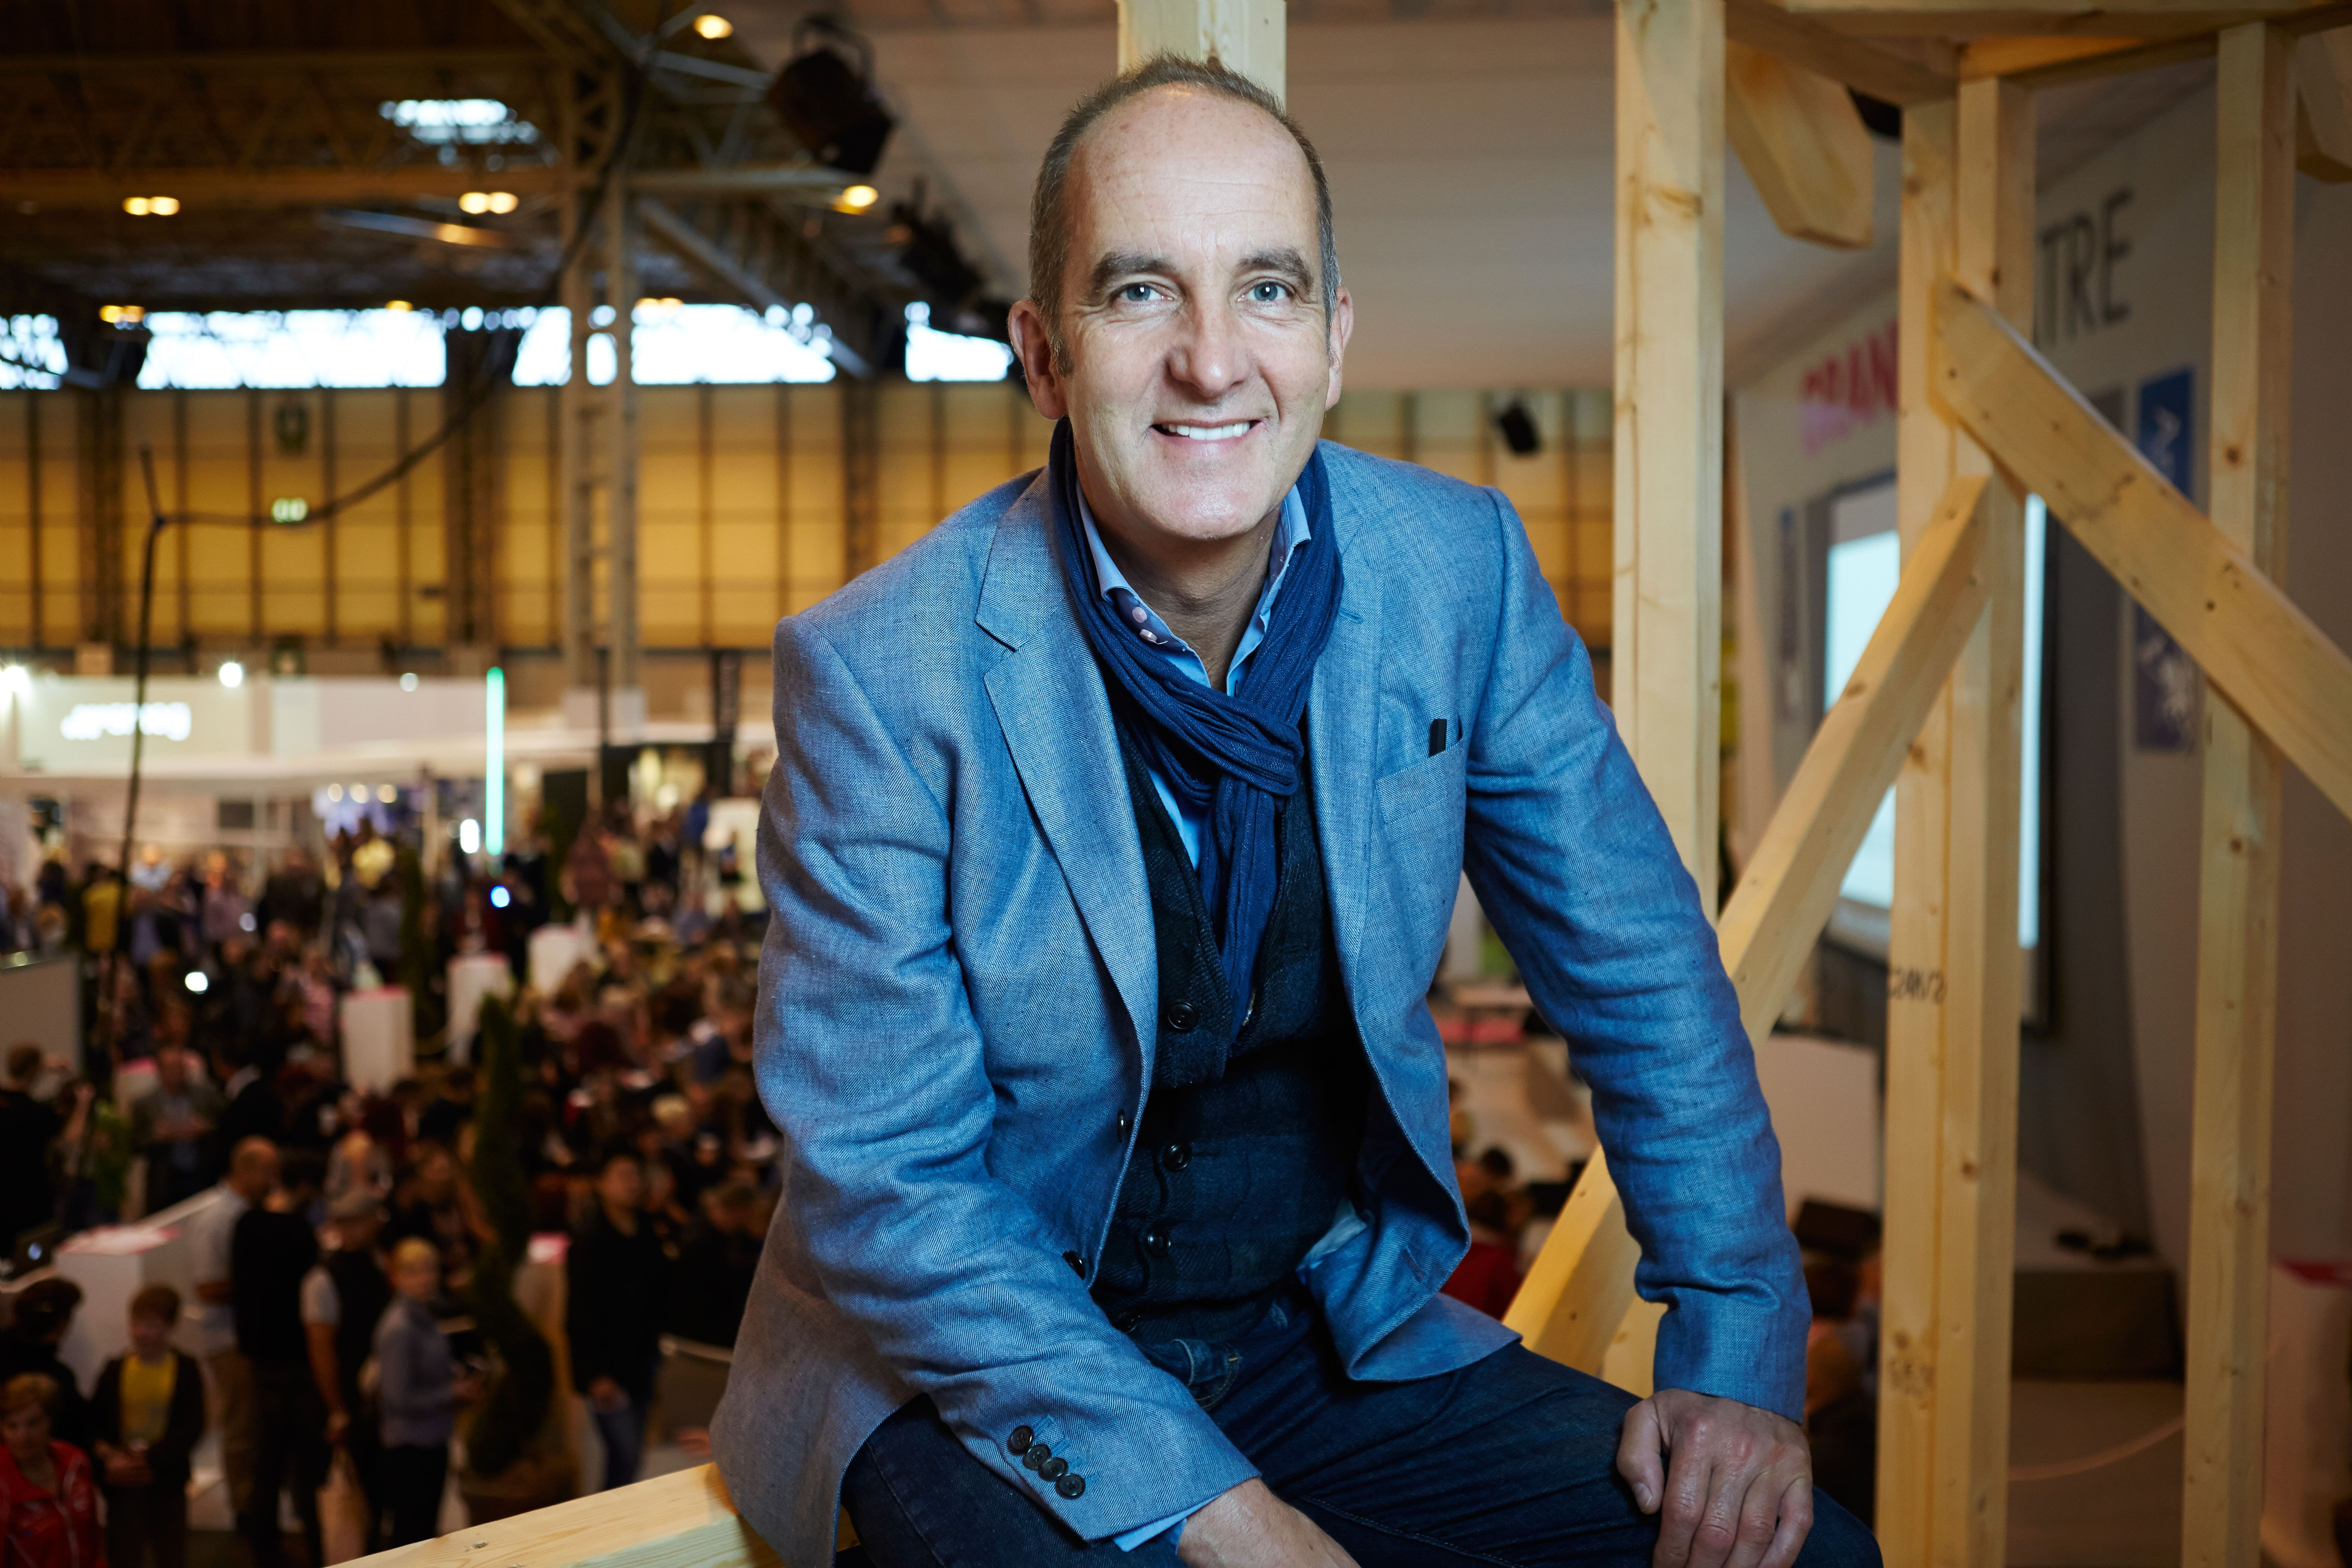 Only two things matter when it comes to small space living, Kevin McCloud reveals